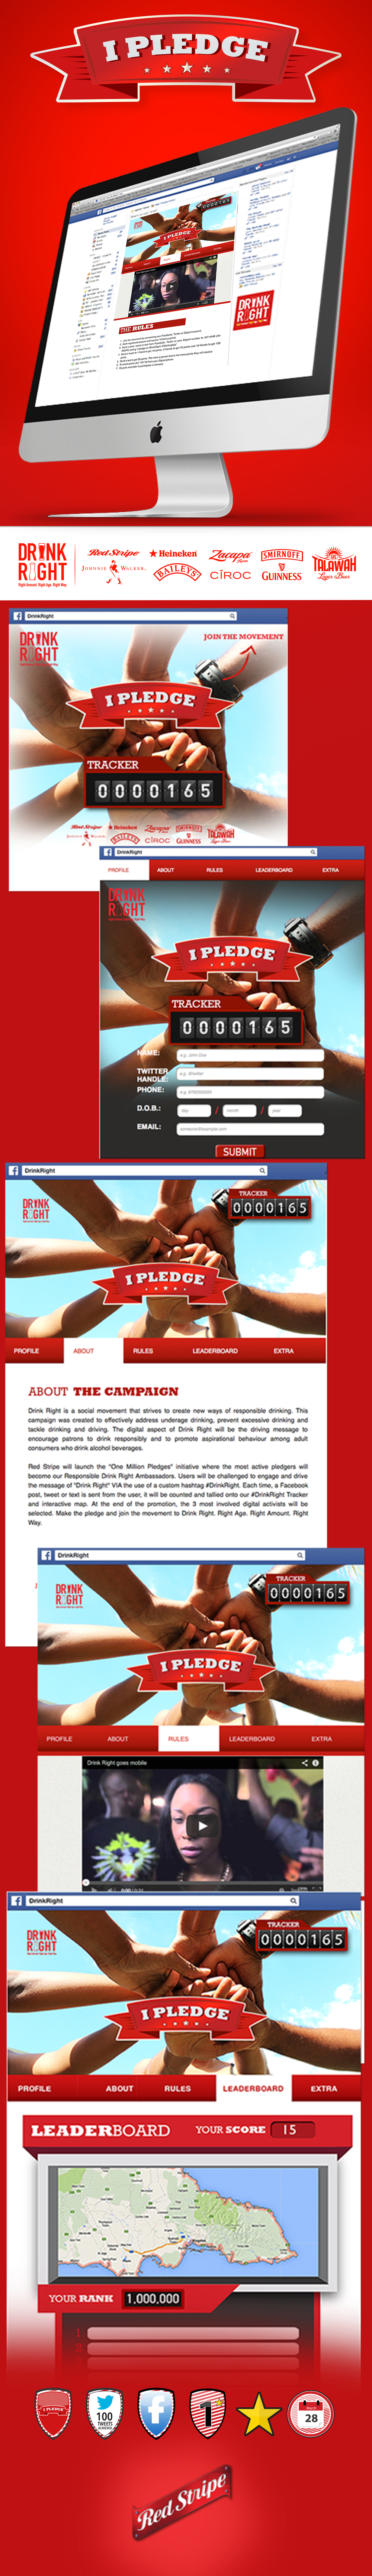 ipledge redstripe_portfolio_BG-Recovered.jpg